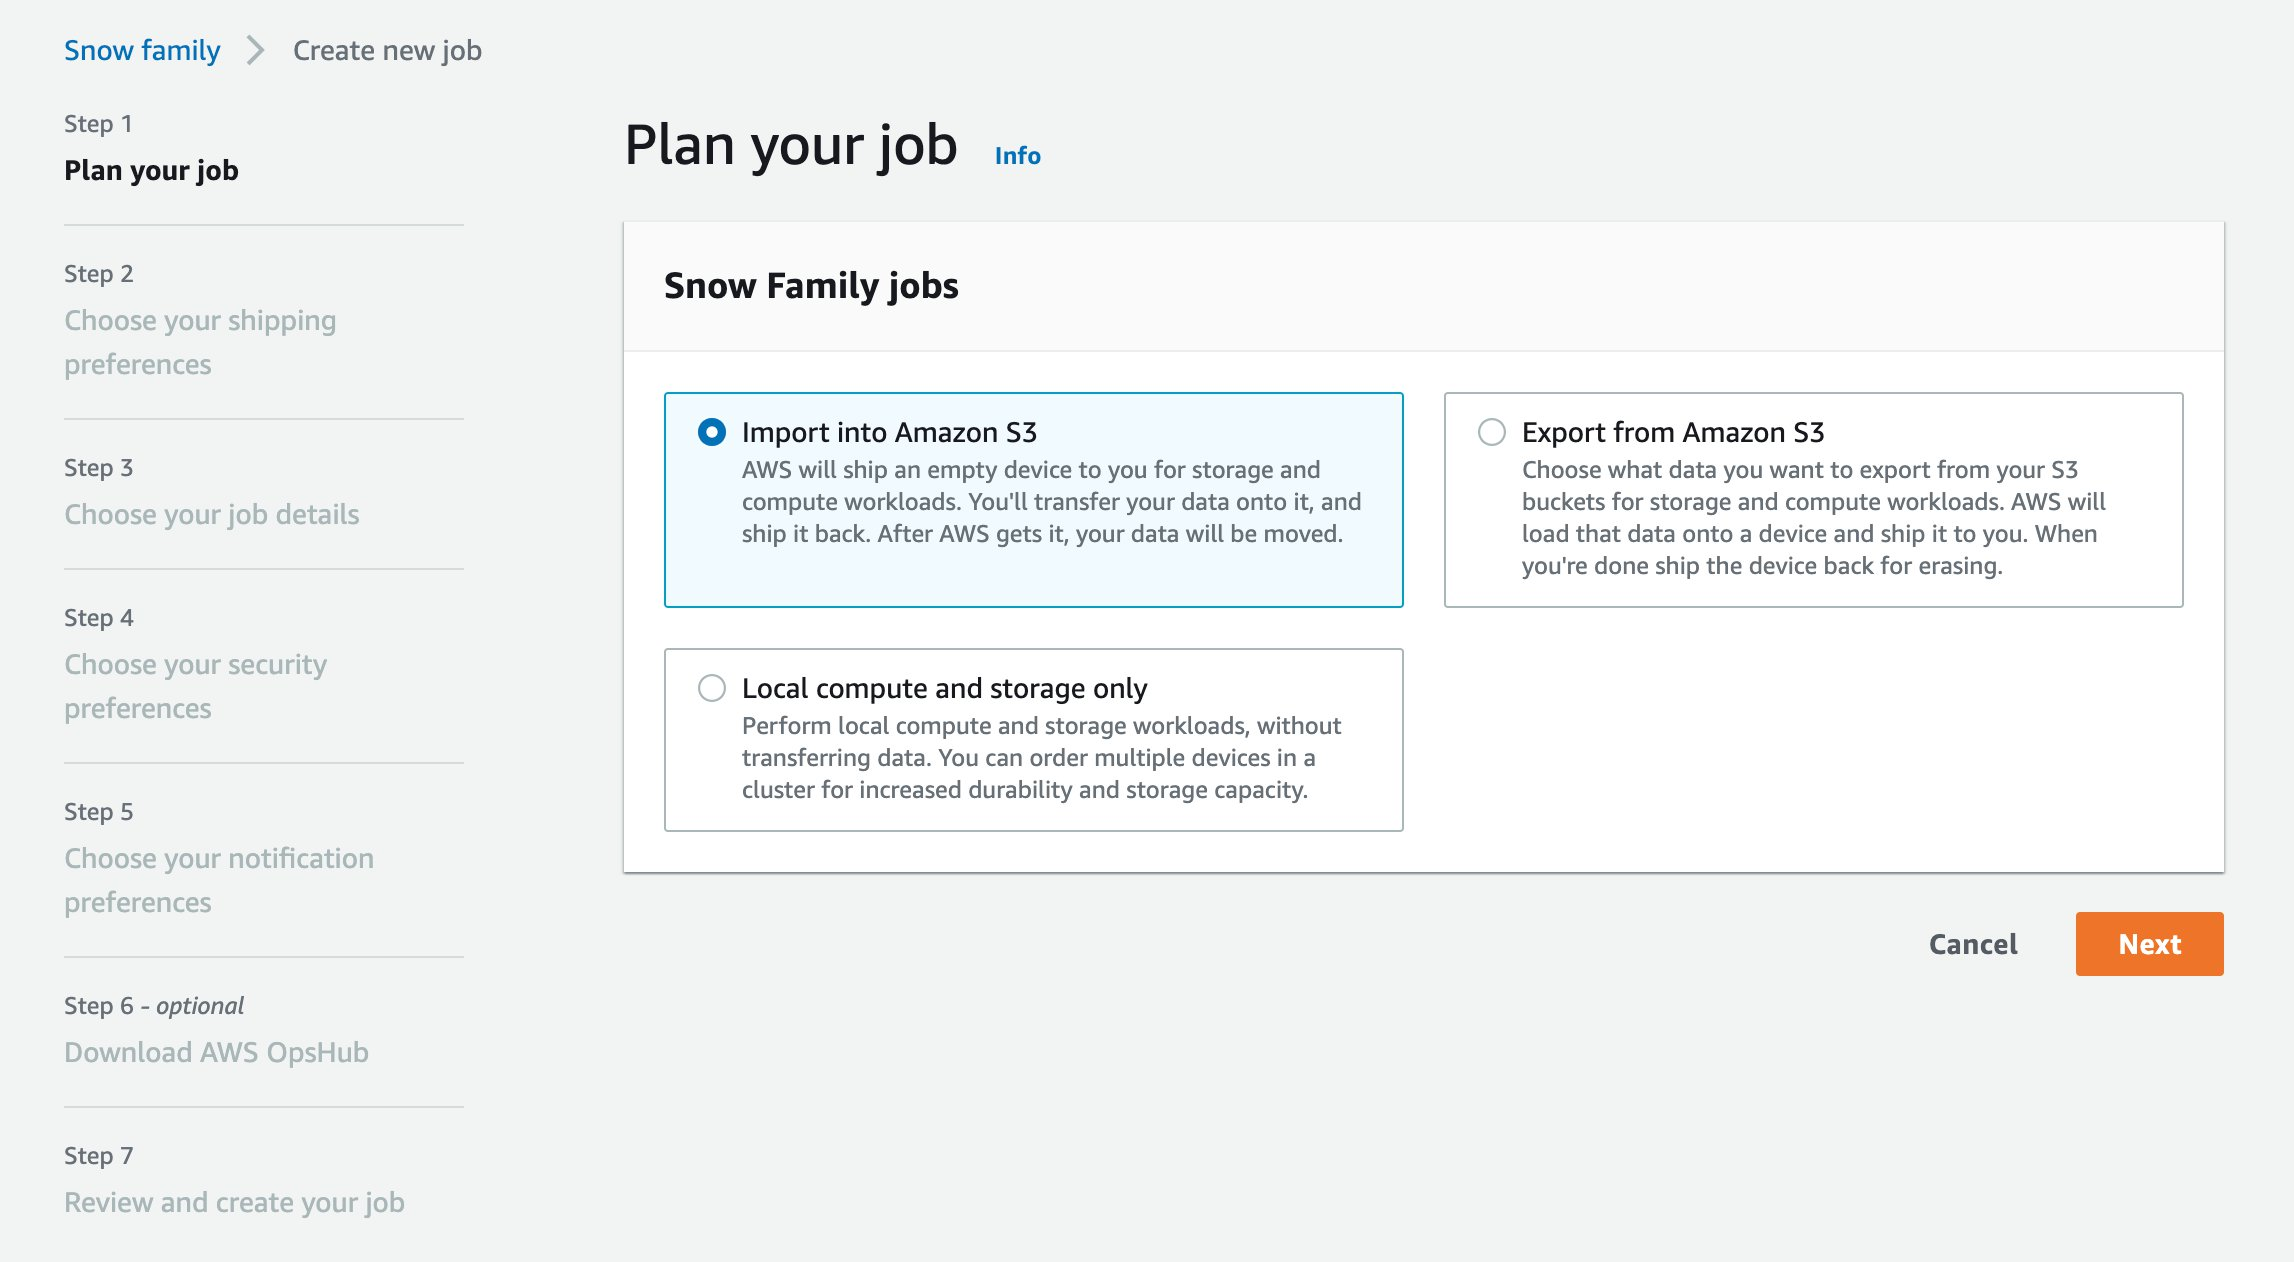 If you want to create an Import job using AWS Snowcone, select Import into Amazon S3 and click Next.